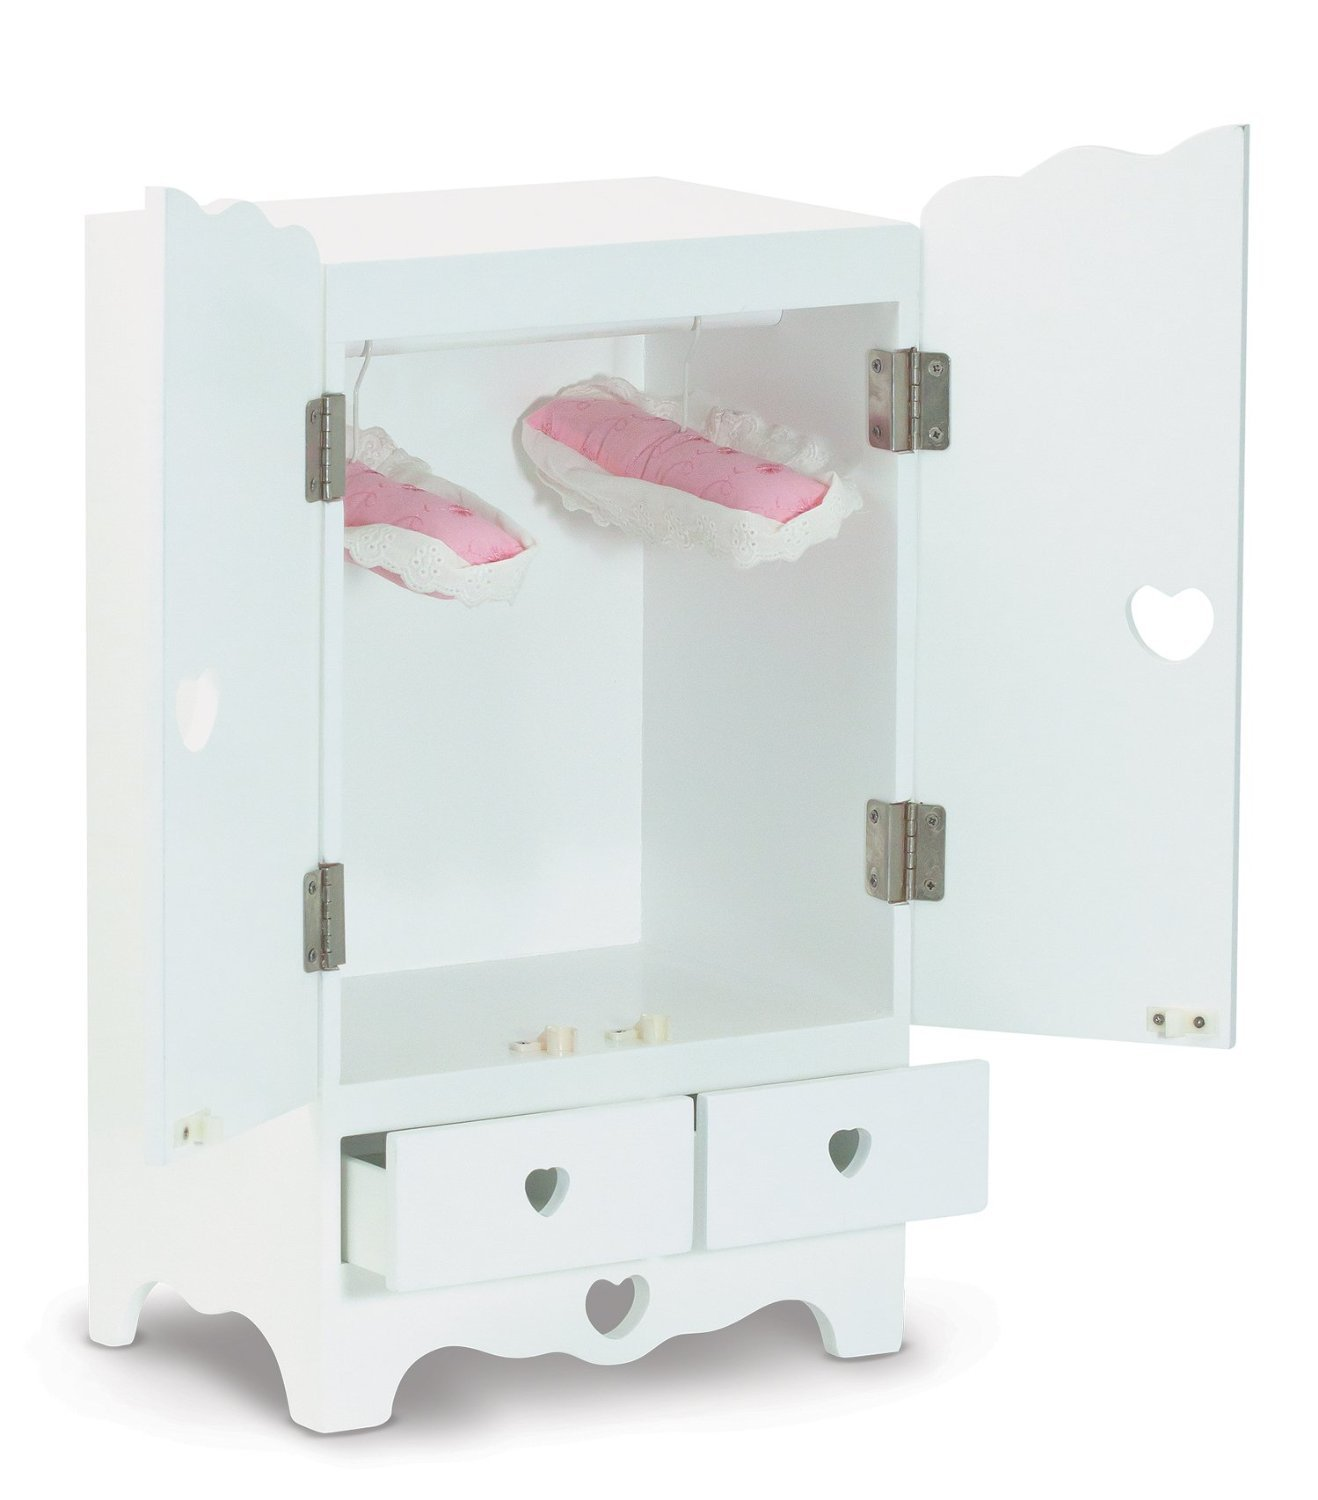 Charmant Amazon.com: Melissa U0026 Doug 9384 White Wooden 20 Inches Tall Doll Armoire:  Melissa U0026 Doug: Toys U0026 Games